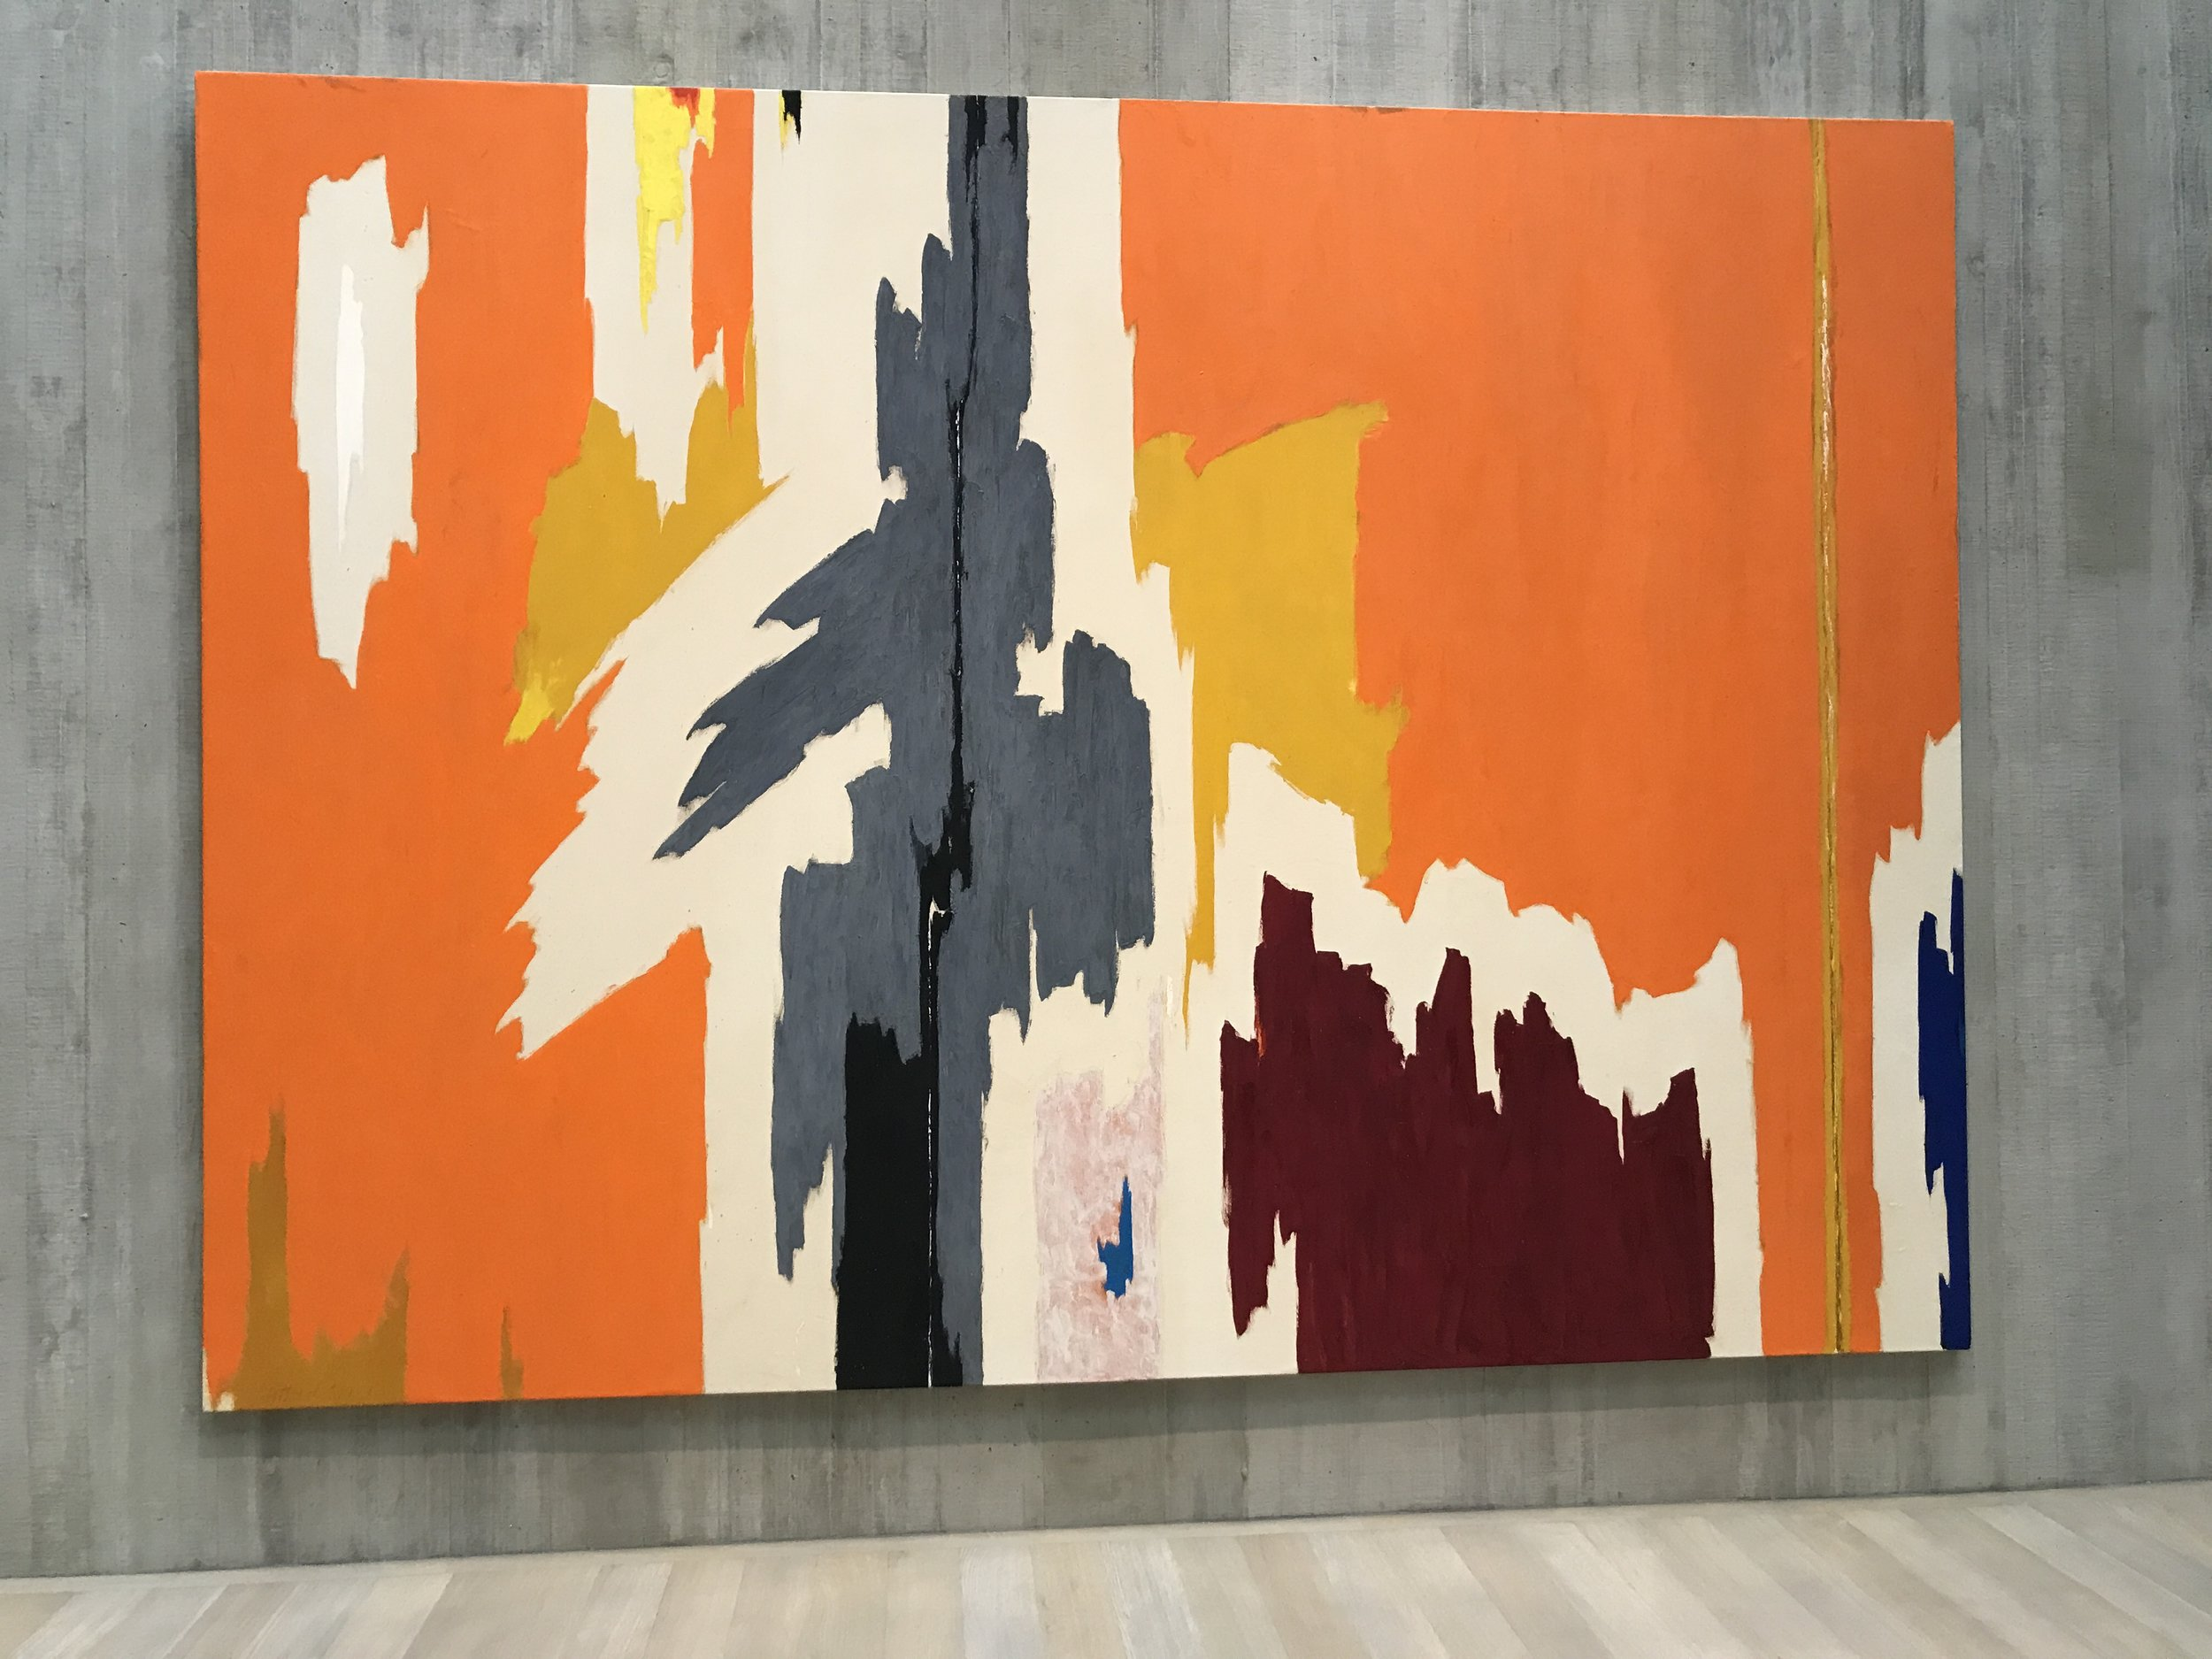 Seeing Clyfford Still's work at the PMA years ago was the first time I recognized an existential crisis in a painting (NOT in painting). Still's dedicated museum also had a great exhibition called,